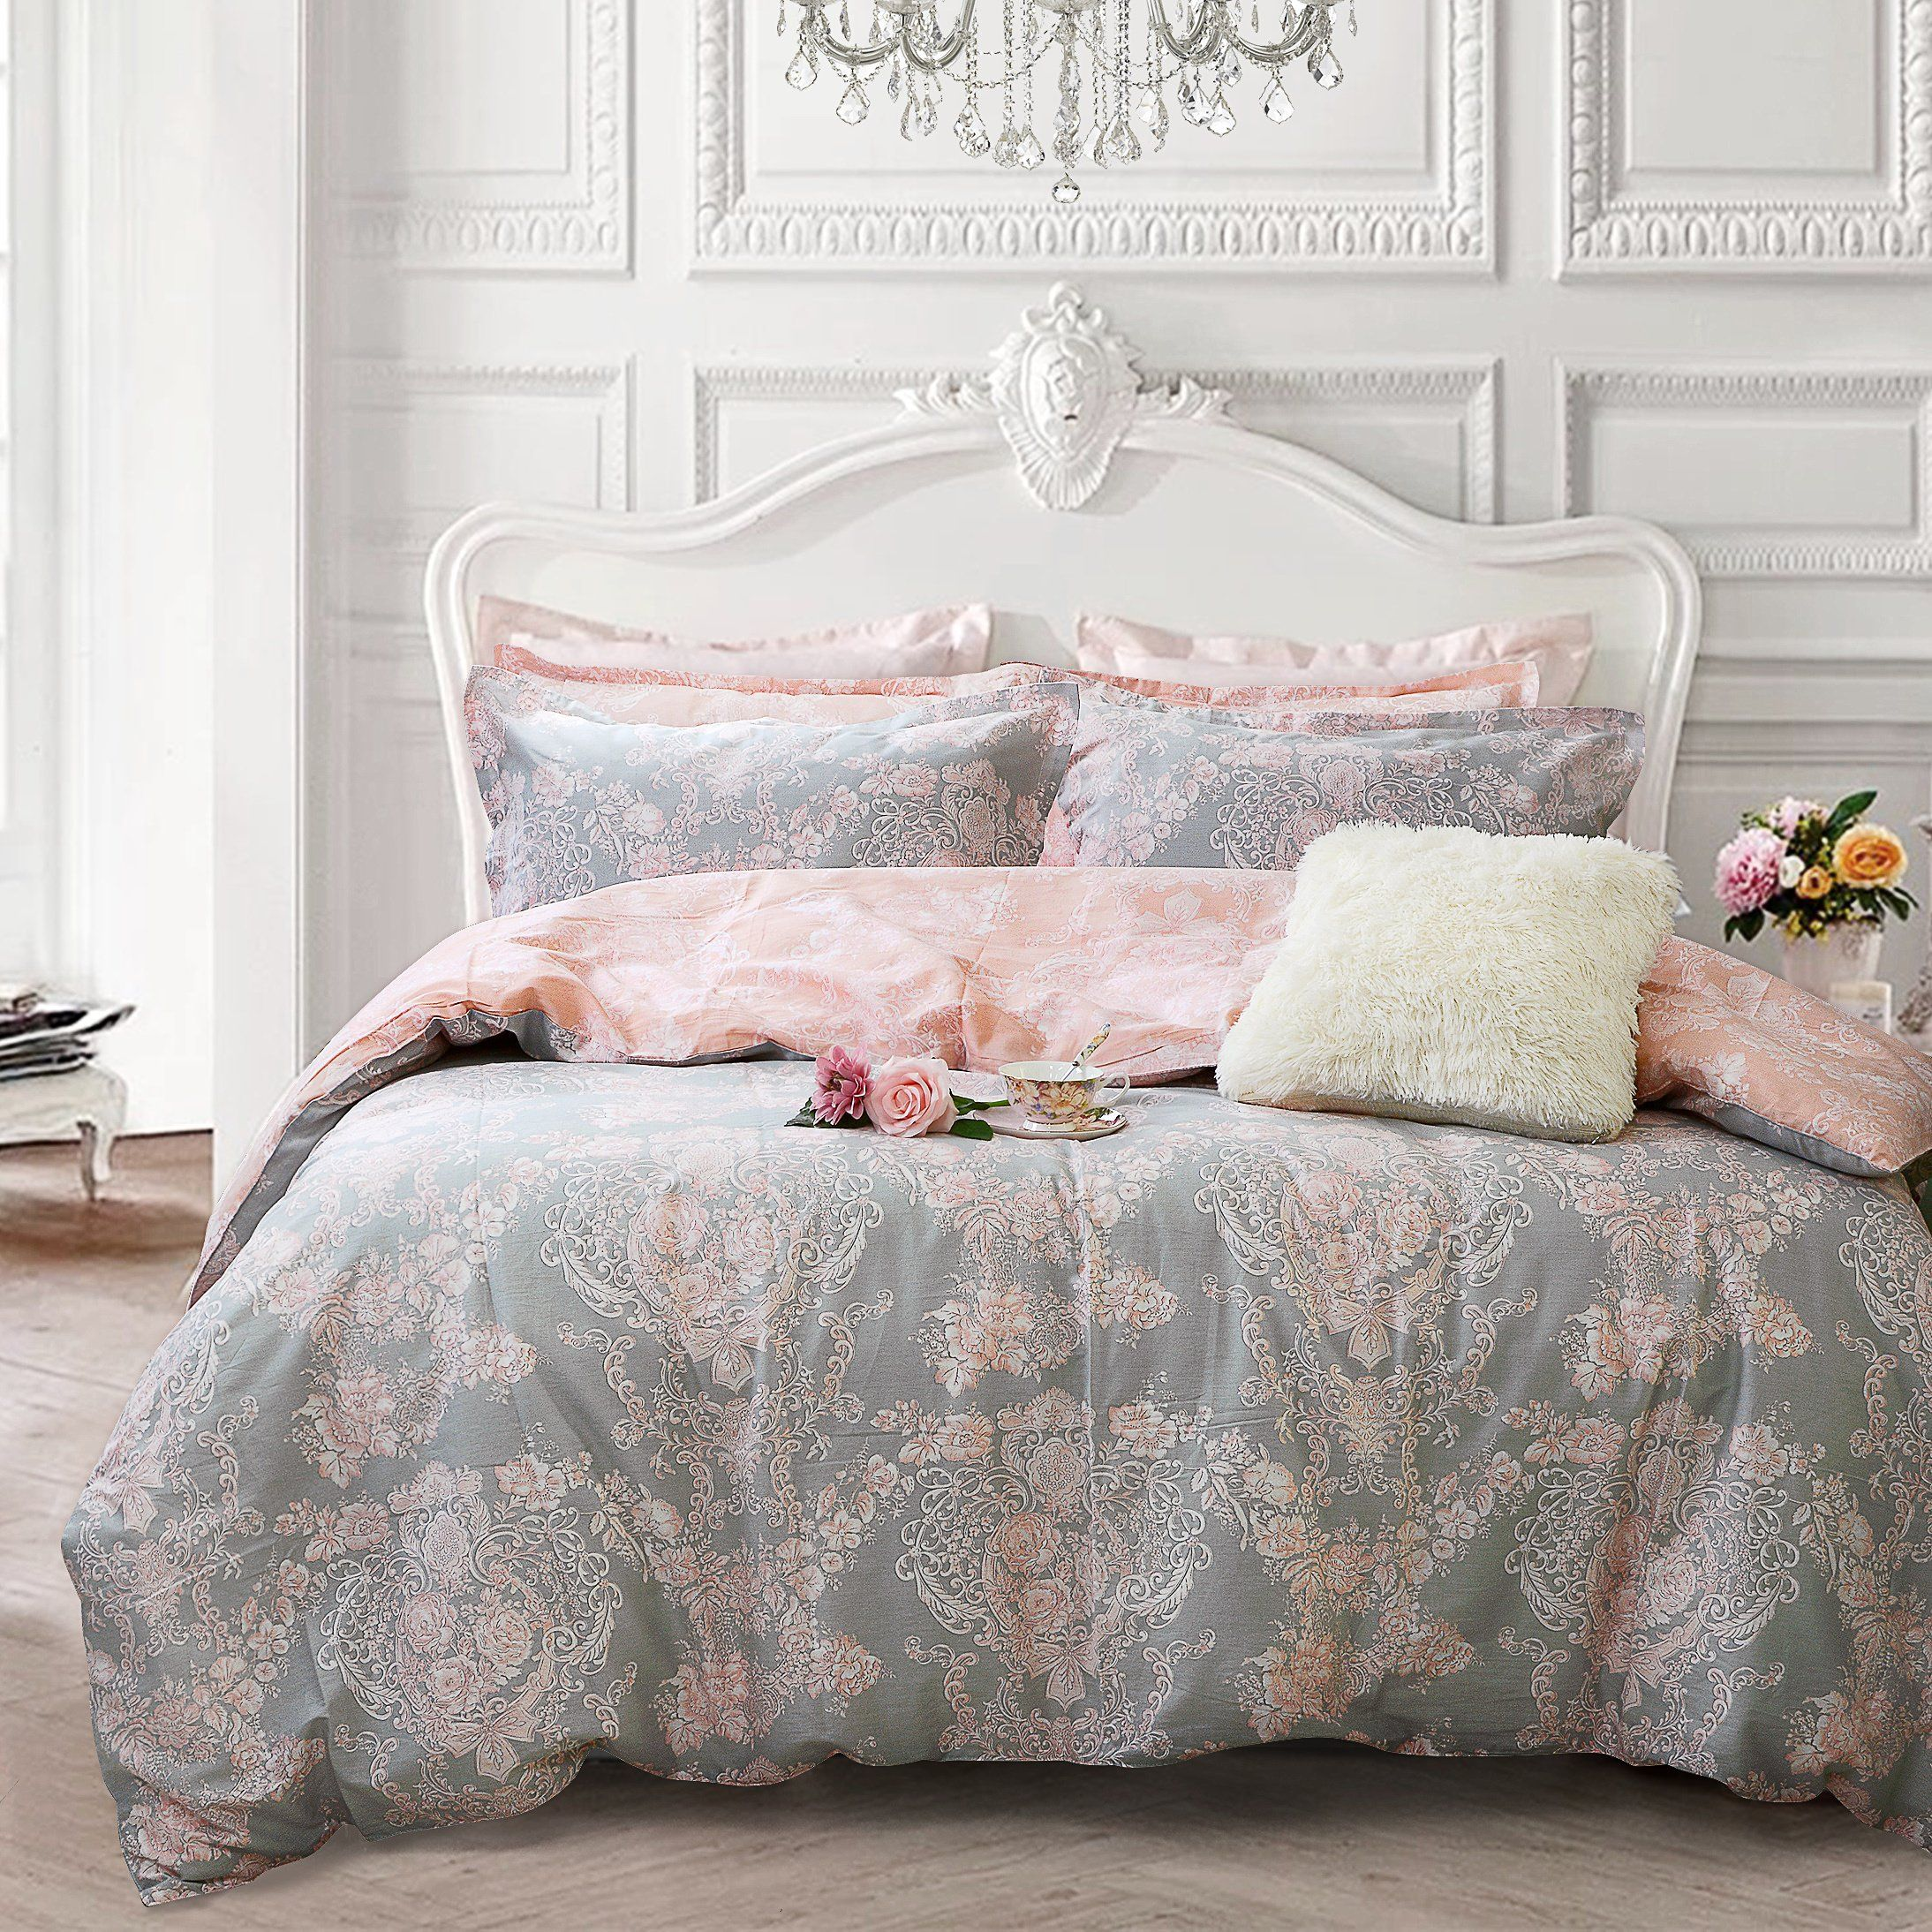 Floral Bedding Bedroom In 2020 Pink And Grey Bedding Full Bedding Sets Pink Bedding